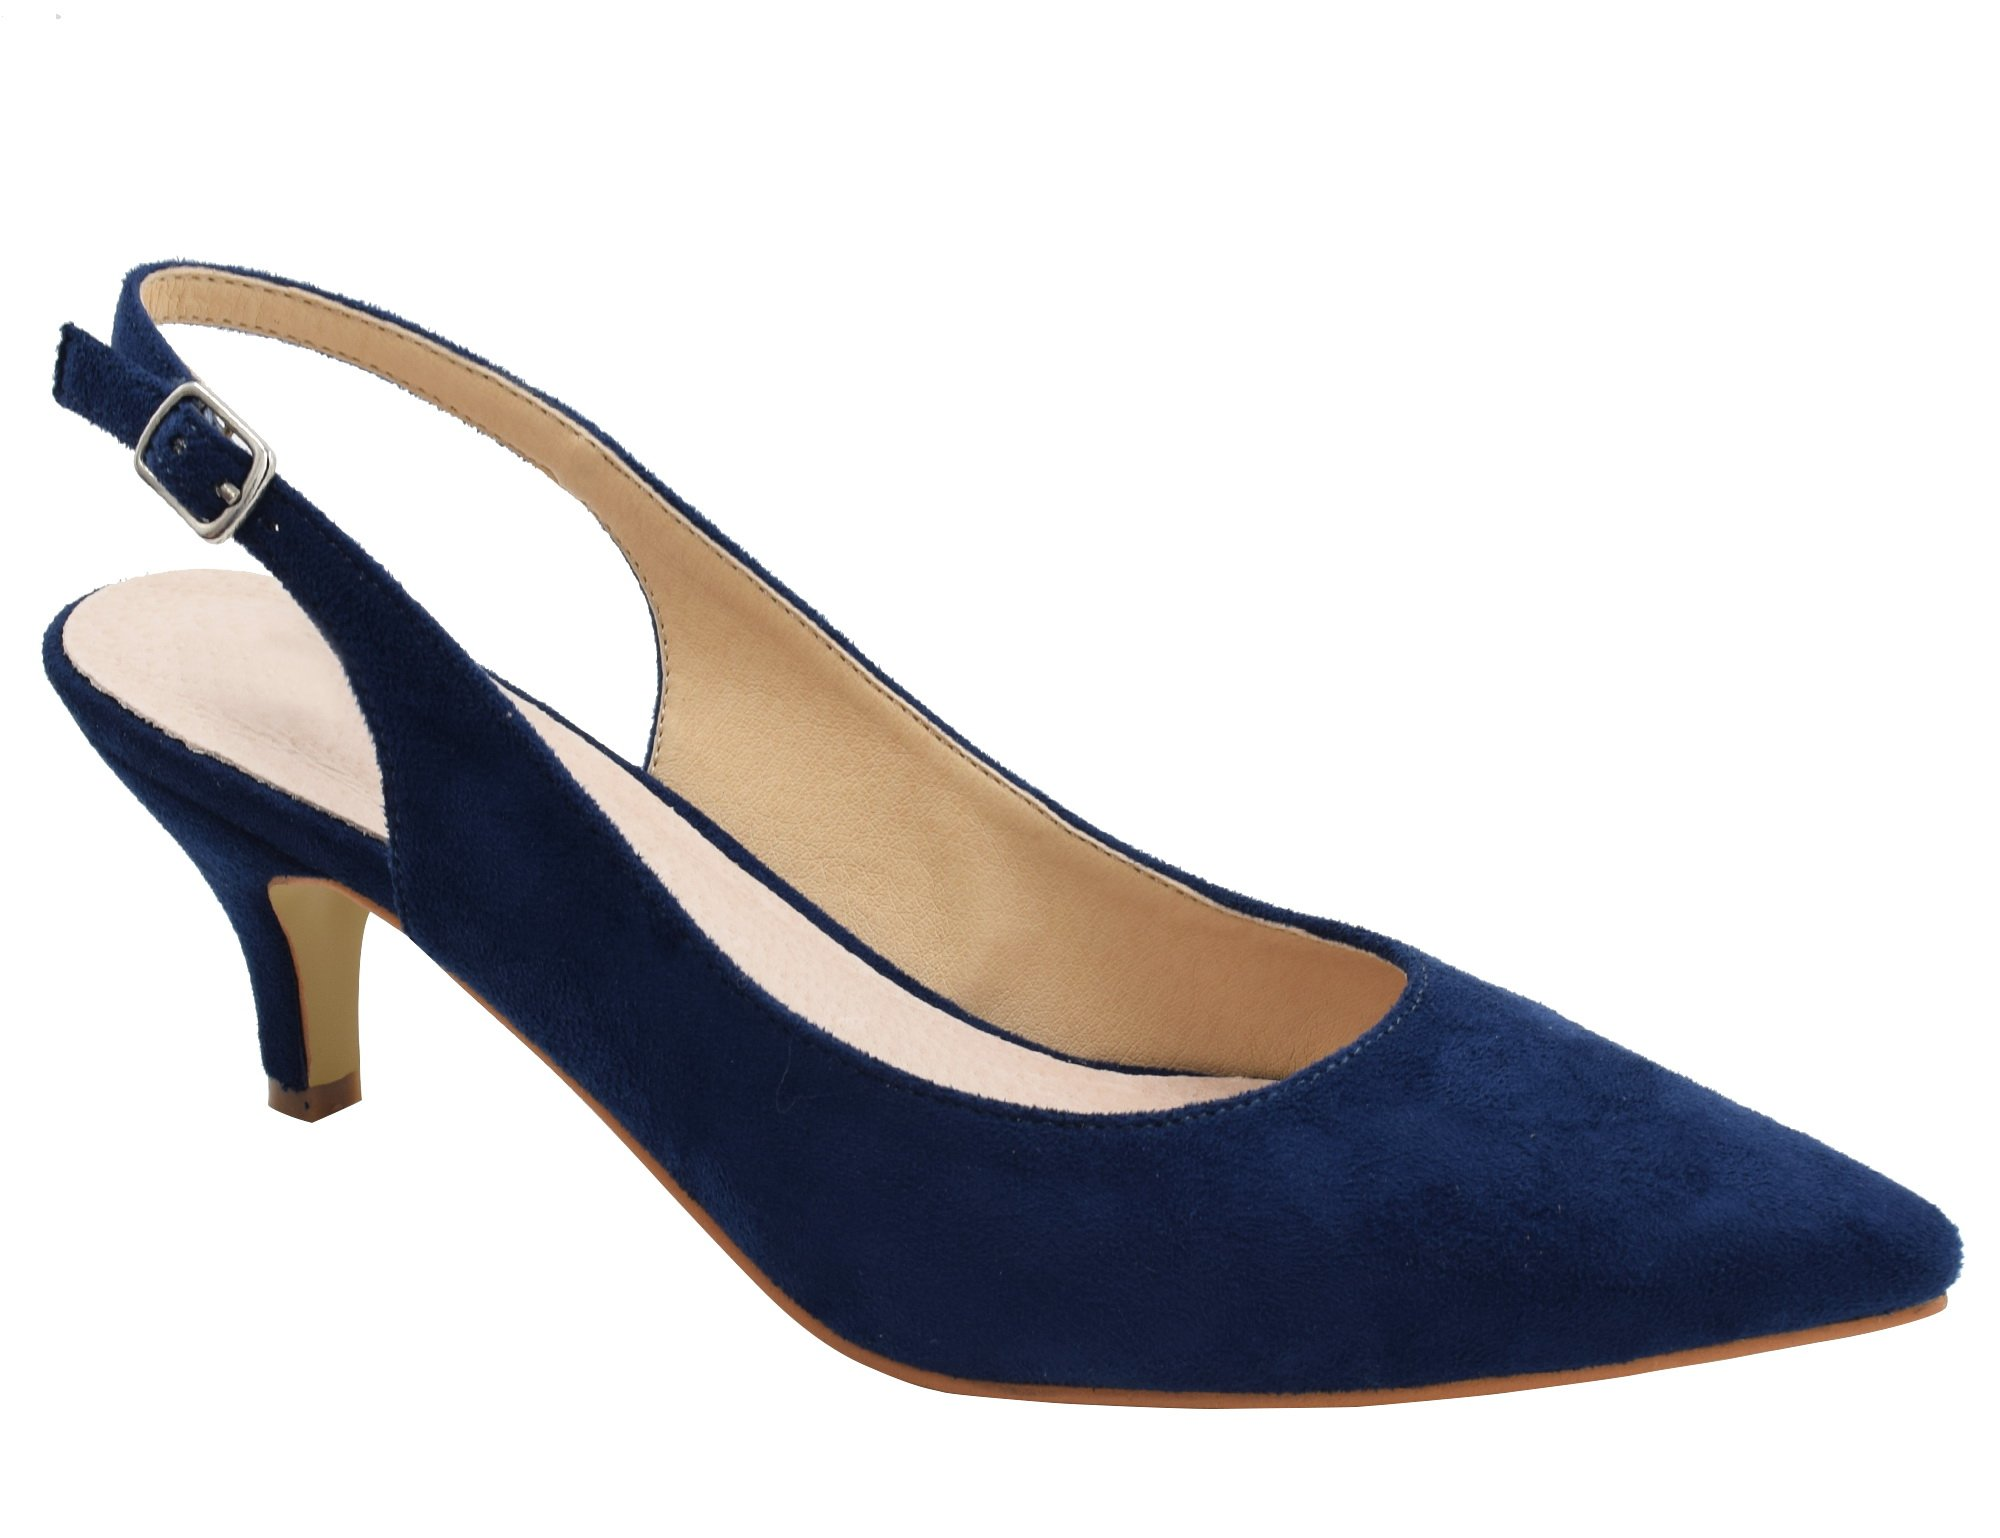 Greatonu Womens Blue Formal Classic Kitten Heels Pumps Shoes Size 9 by Greatonu (Image #1)